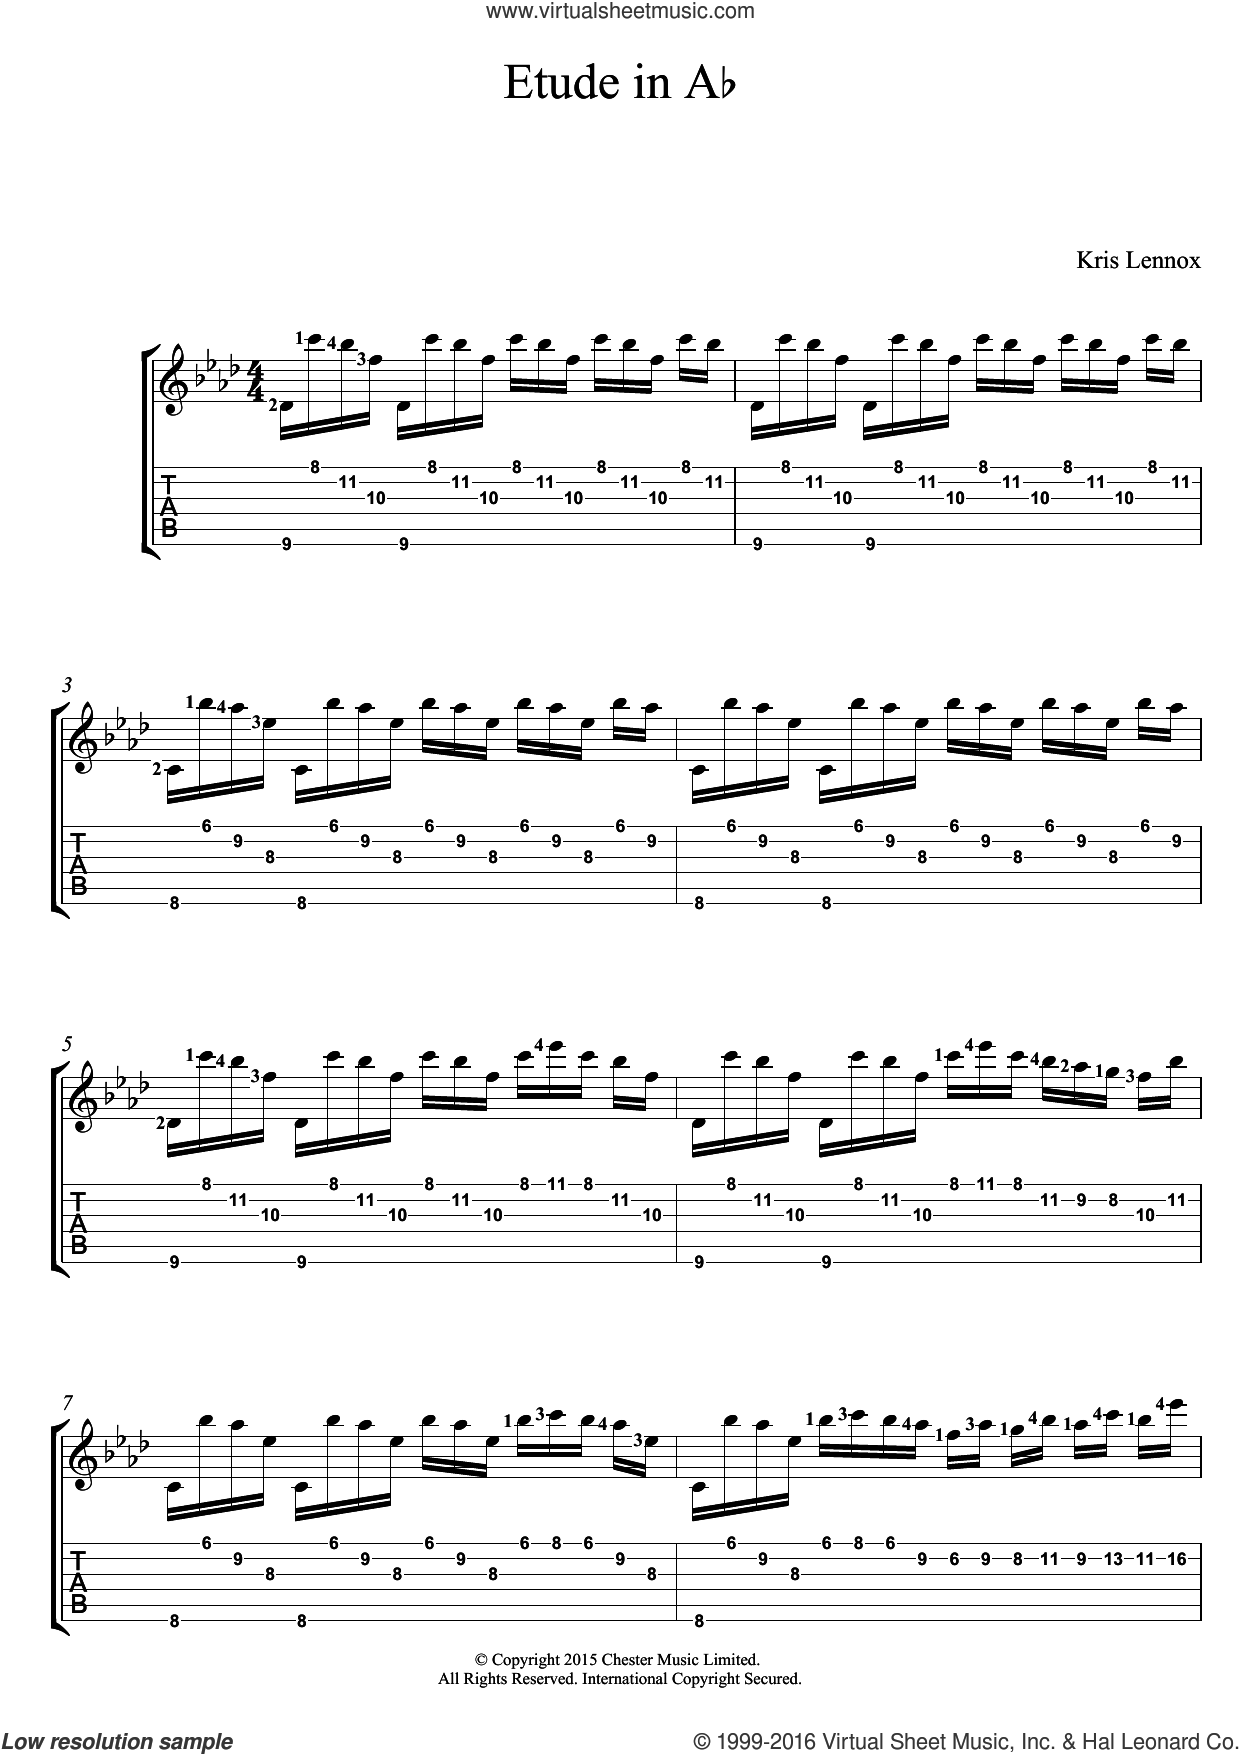 Etude In A Flat sheet music for guitar (tablature) by Kris Lennox. Score Image Preview.